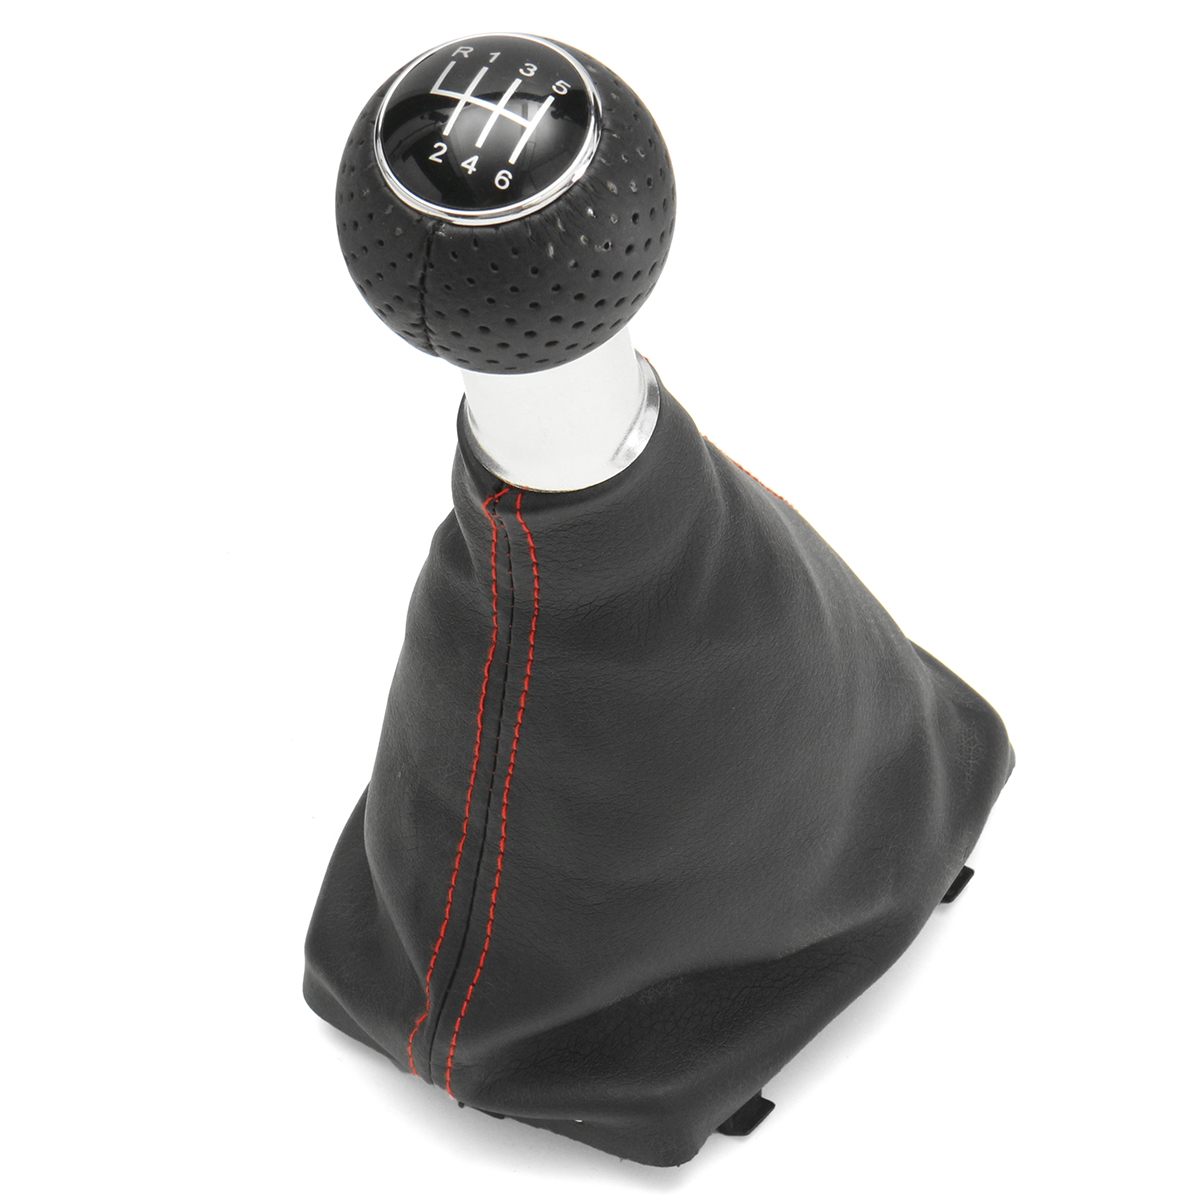 6 Speed Shifter Gear Shift Knob Gaitor Boot Red Line For Audi A3 S3 2001-2003